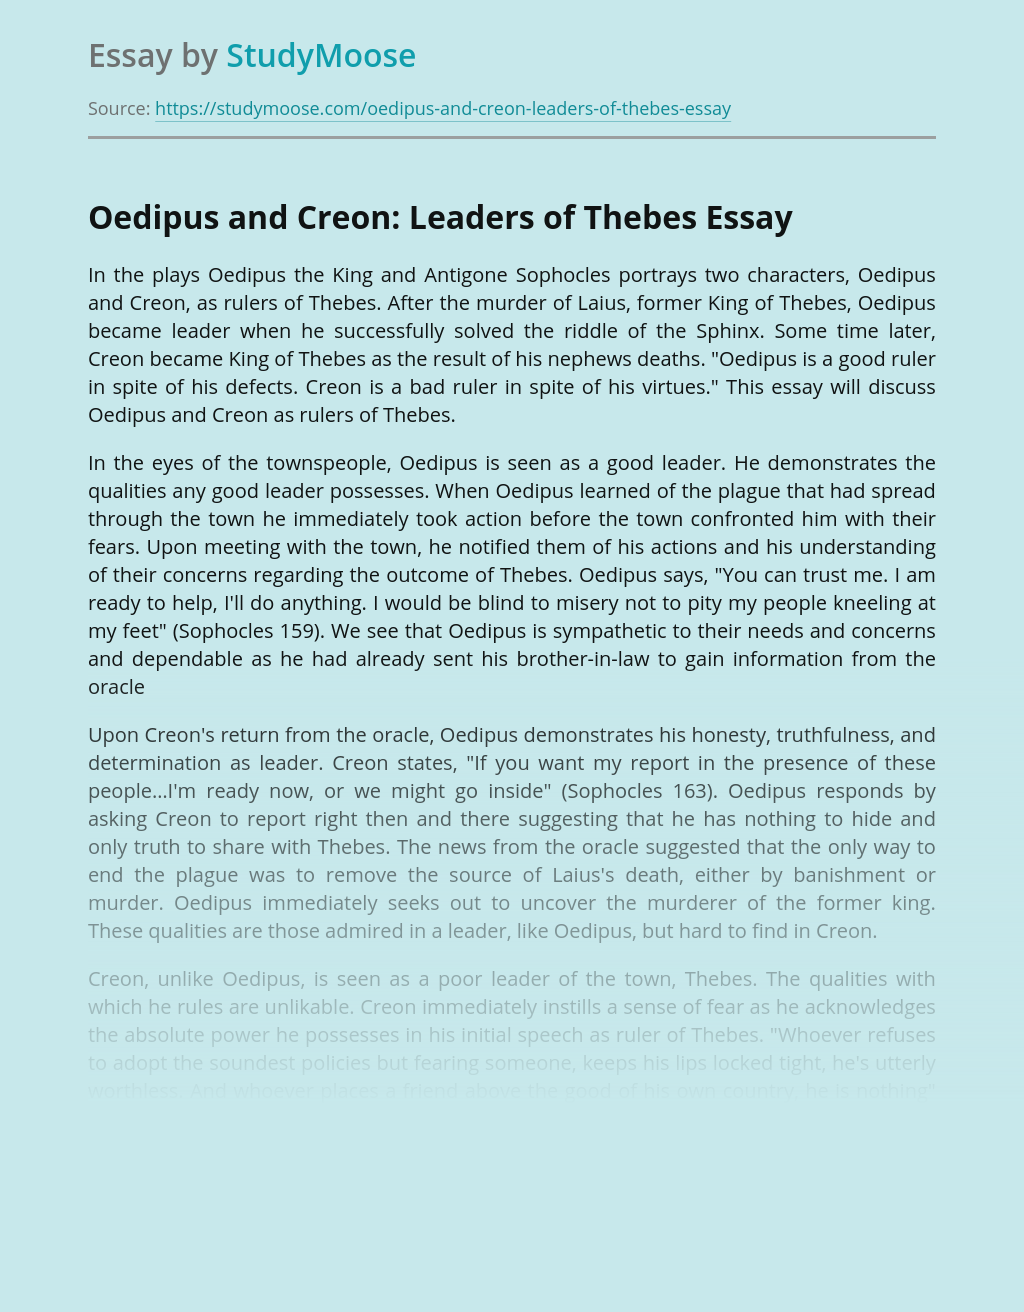 Oedipus and Creon: Leaders of Thebes